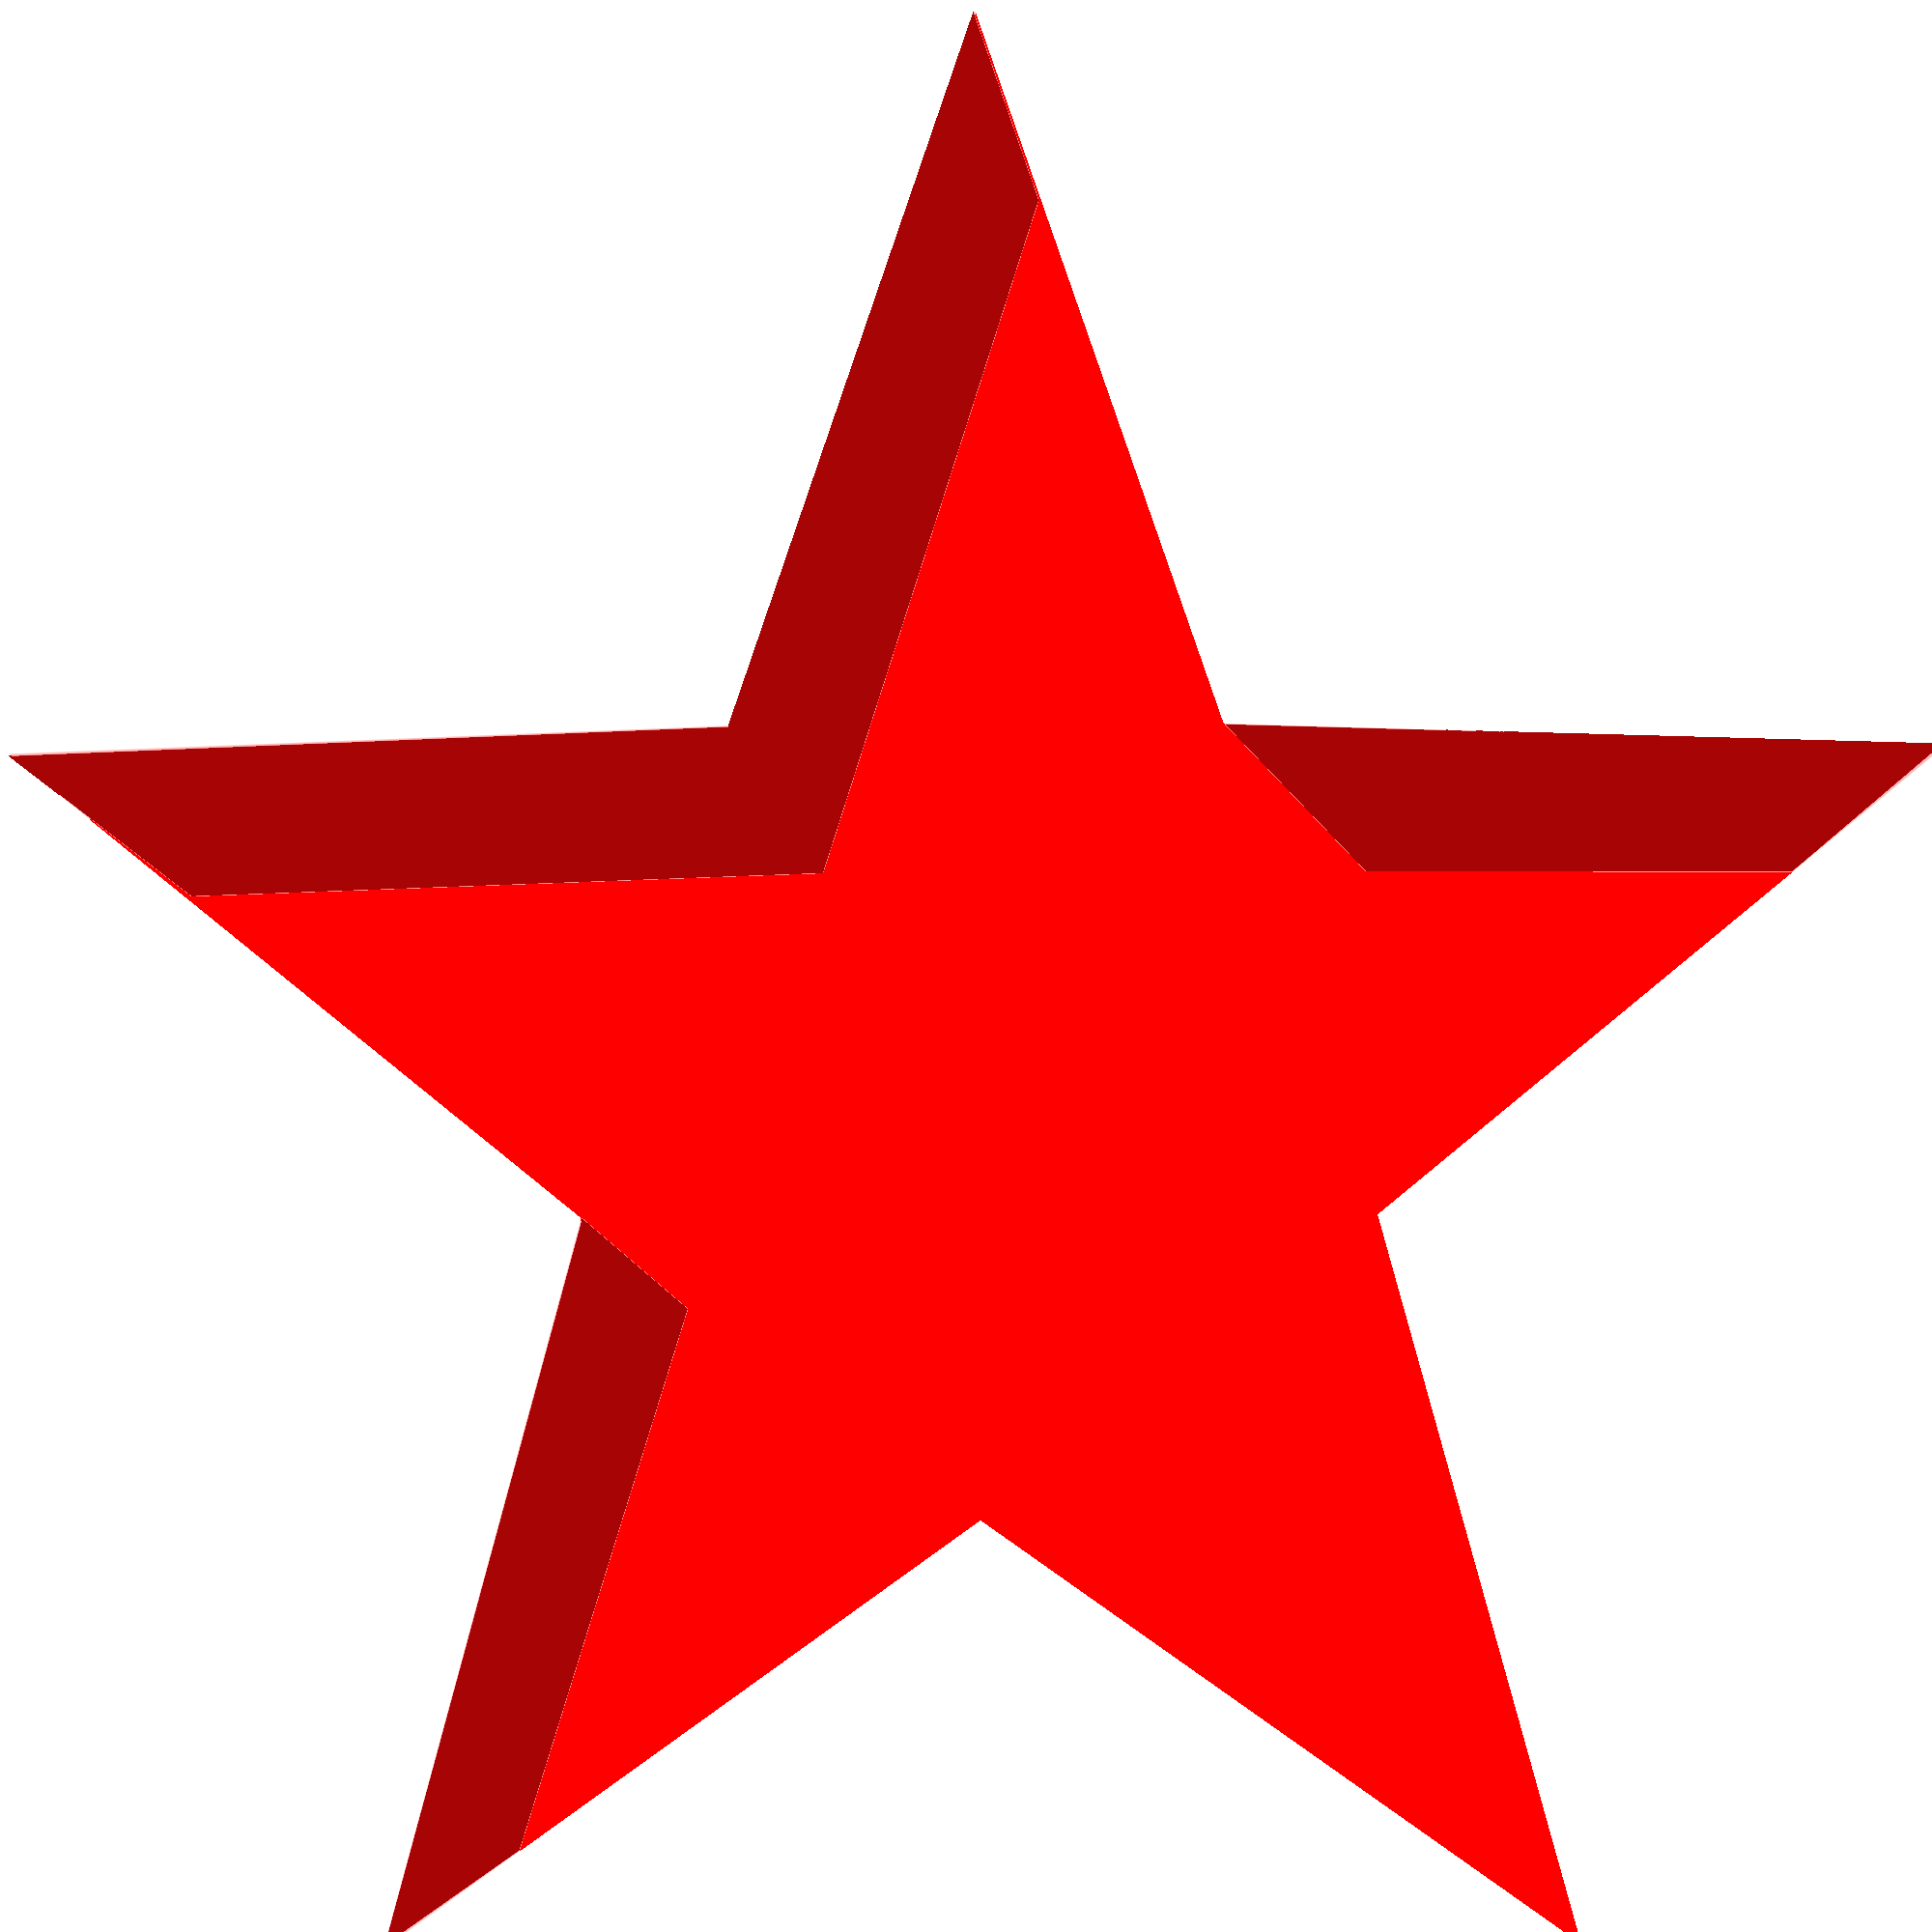 Star images clipart png transparent Star Clipart HD - 12941 - TransparentPNG png transparent